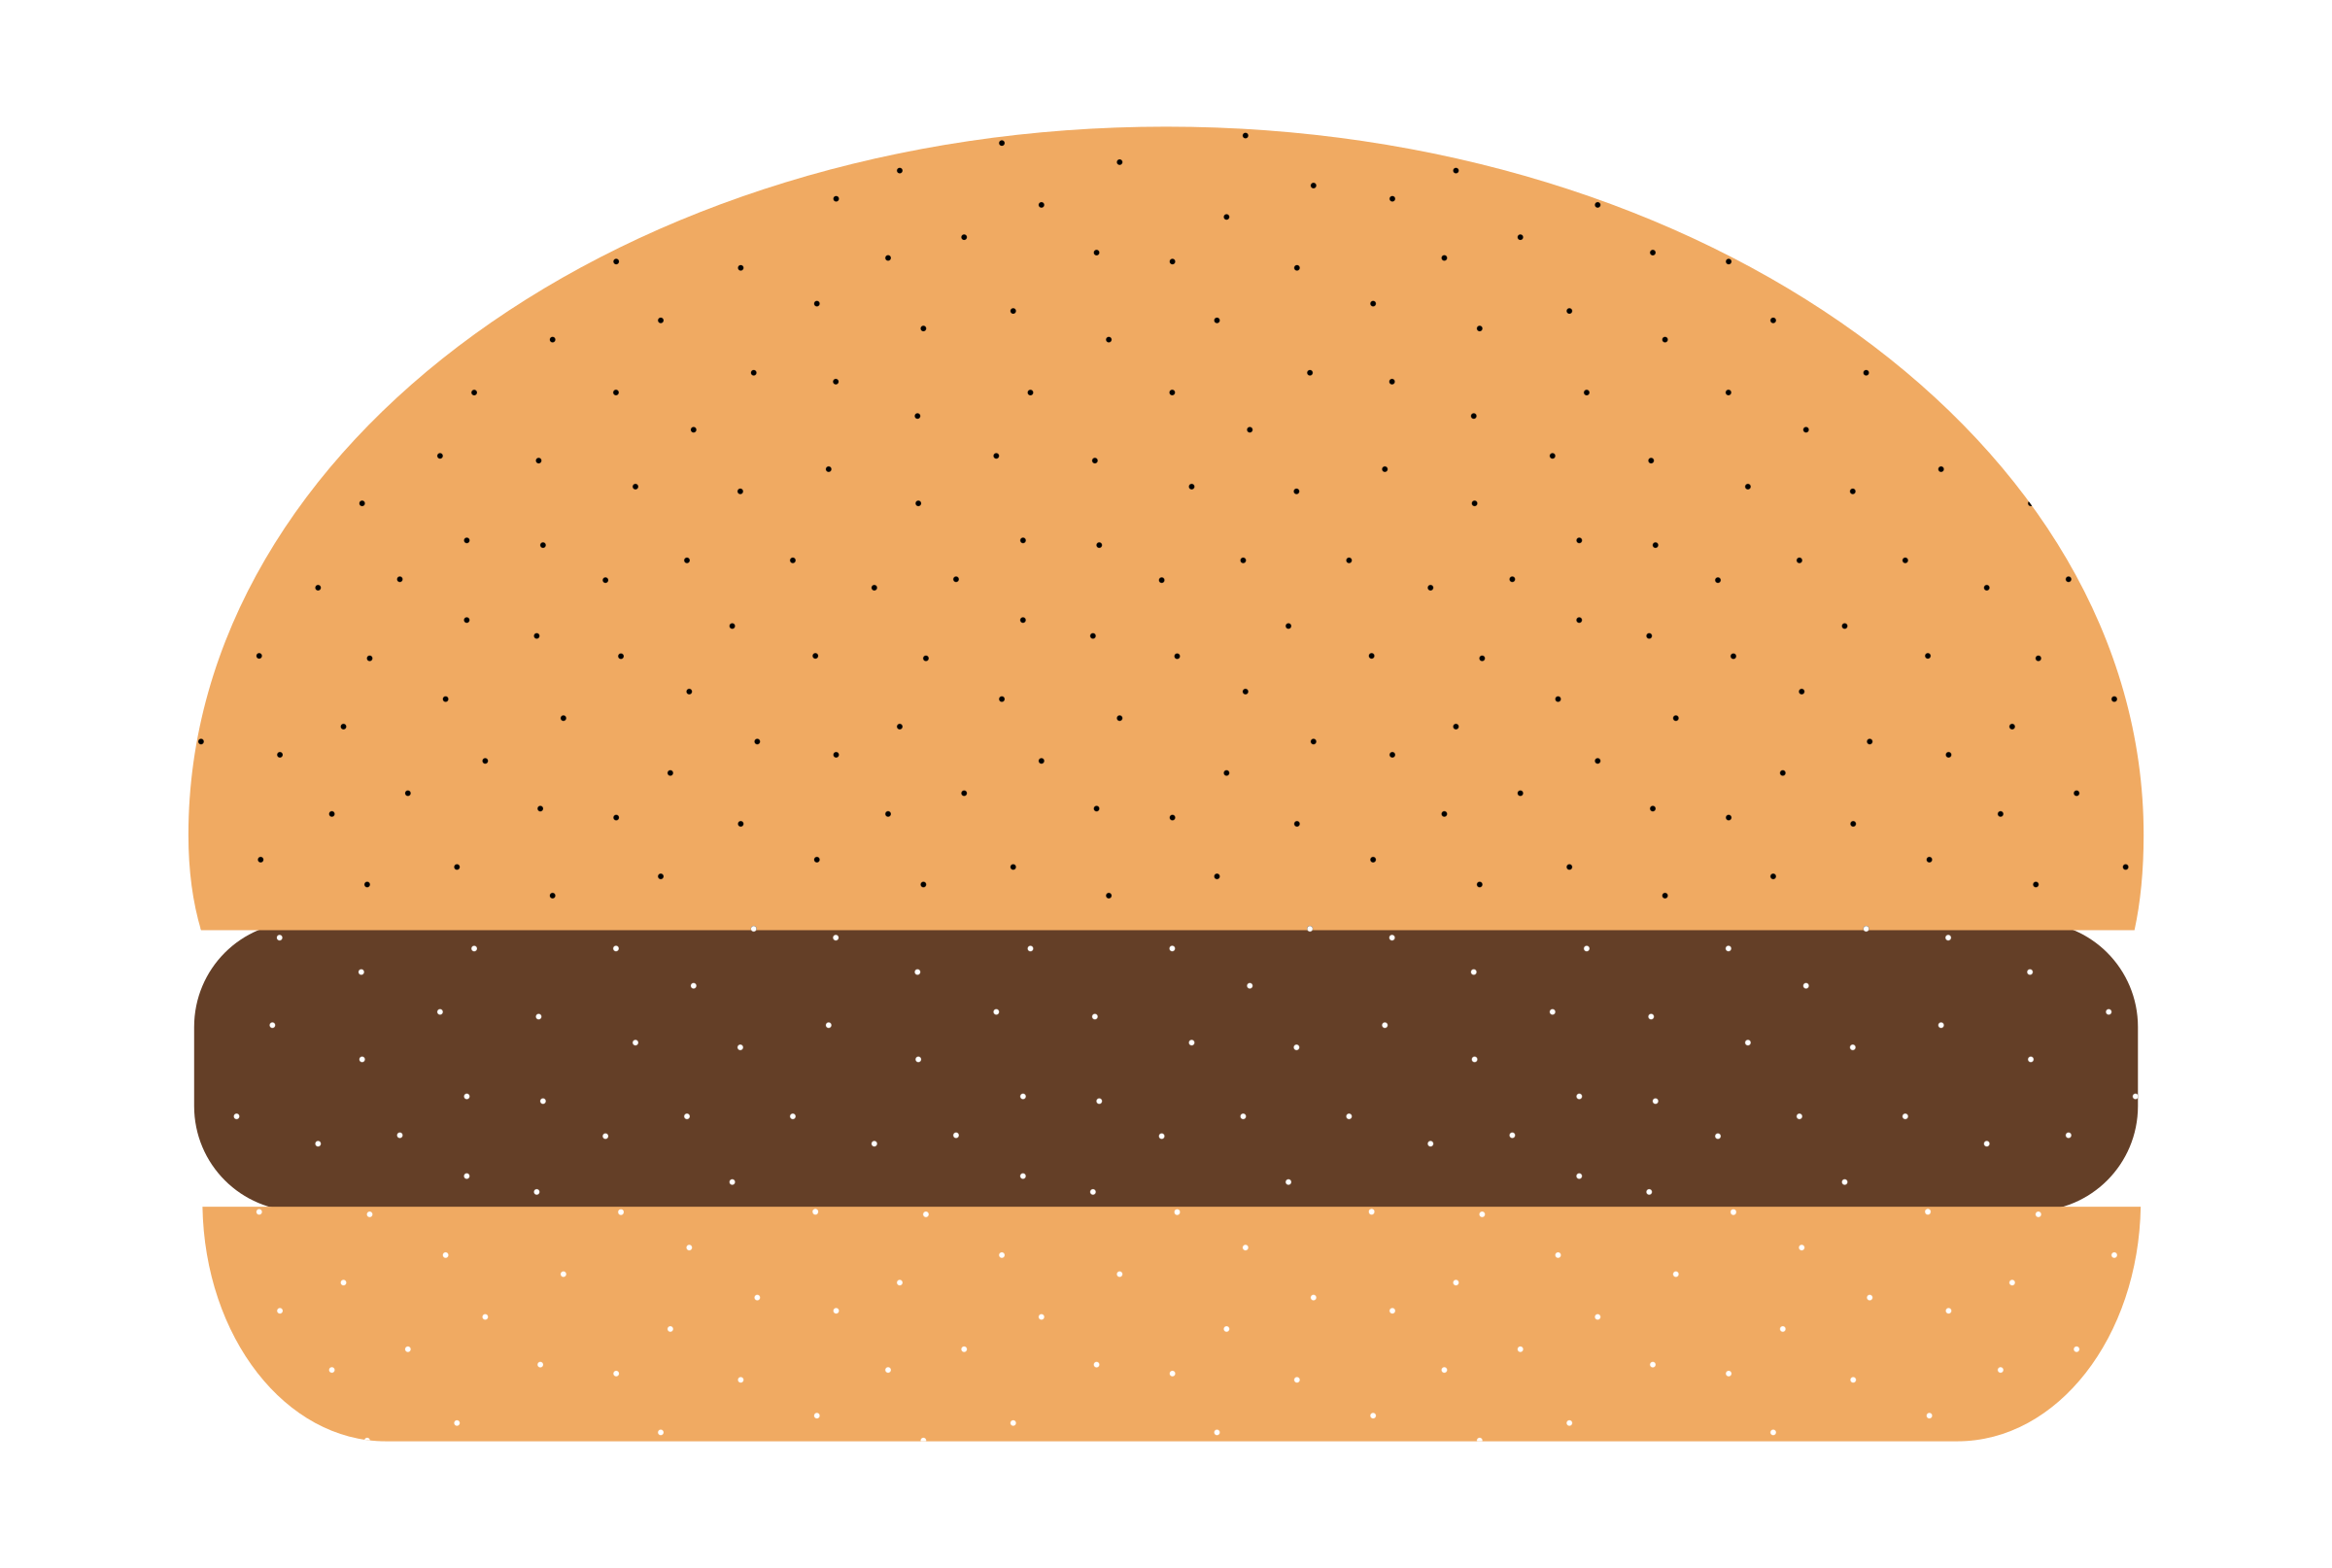 Free burgers cliparts download. Watermelon clipart animated